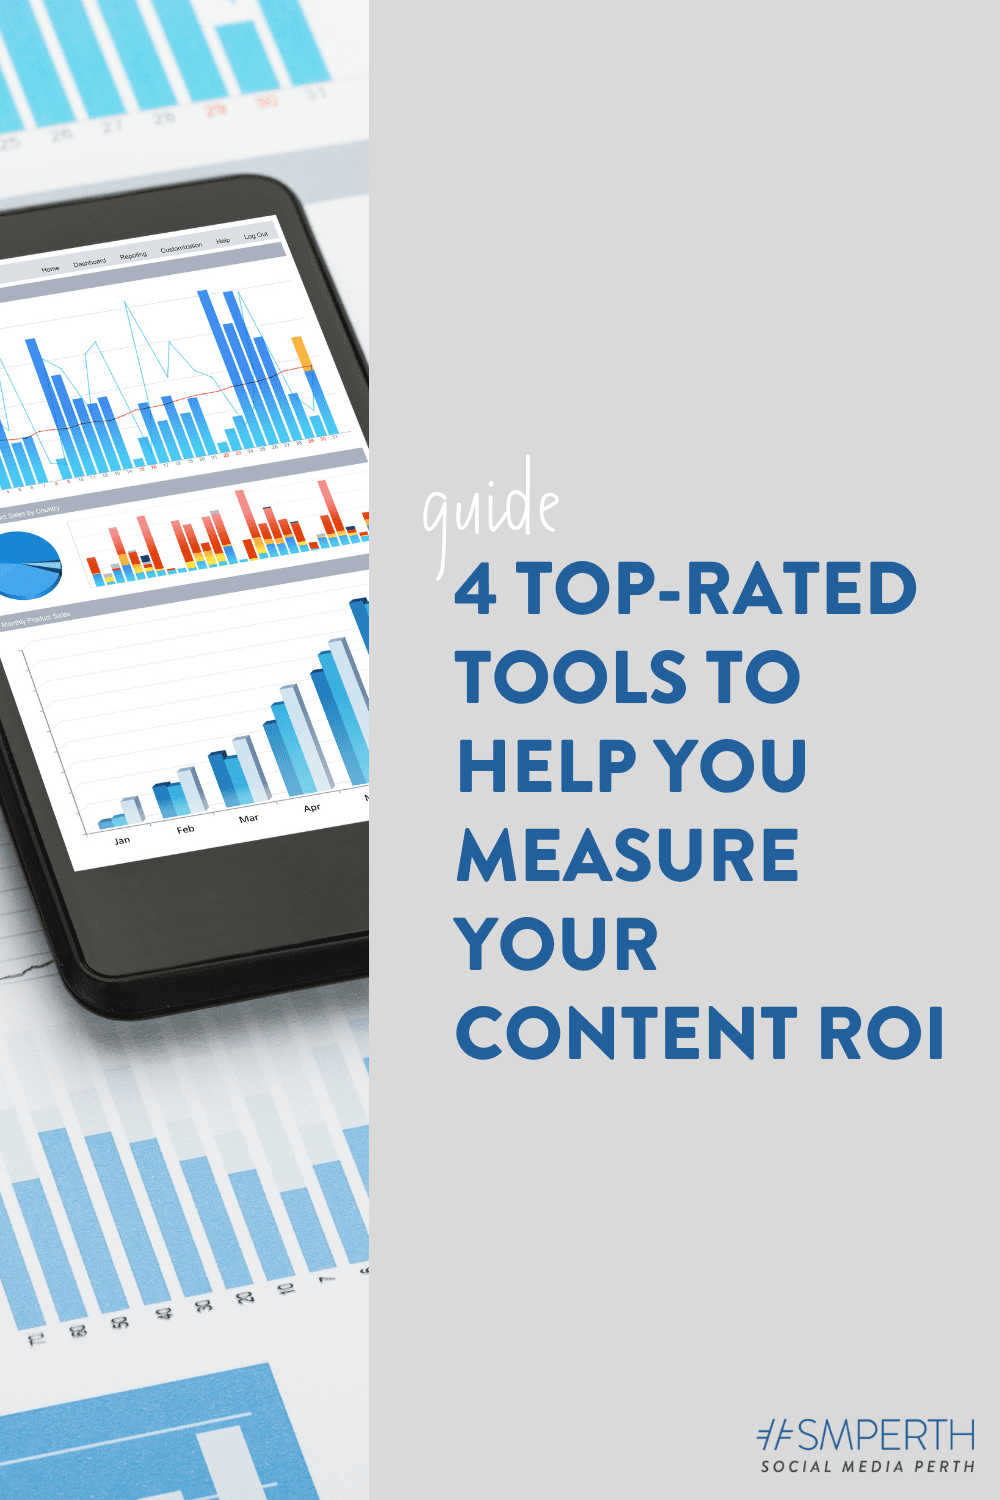 4 Top-Rated Tools to Help You Measure Your Content ROI